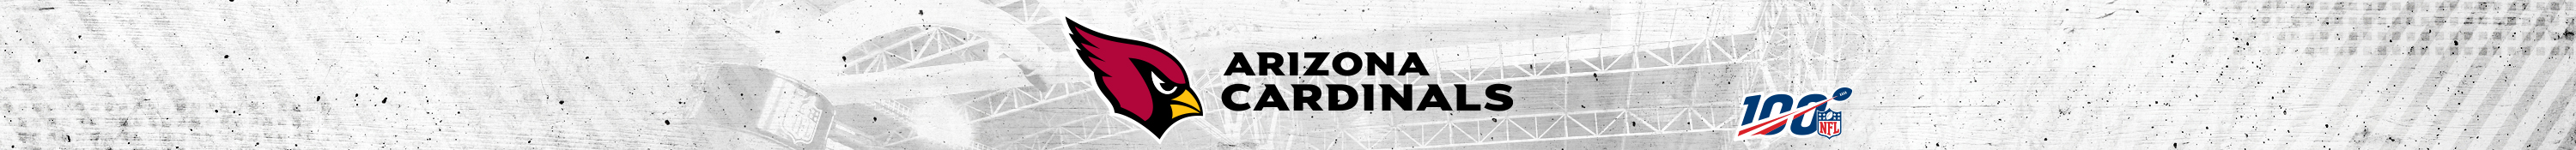 bd2e8c35 Cardinals Official Team Website I Arizona Cardinals – AZCardinals.com